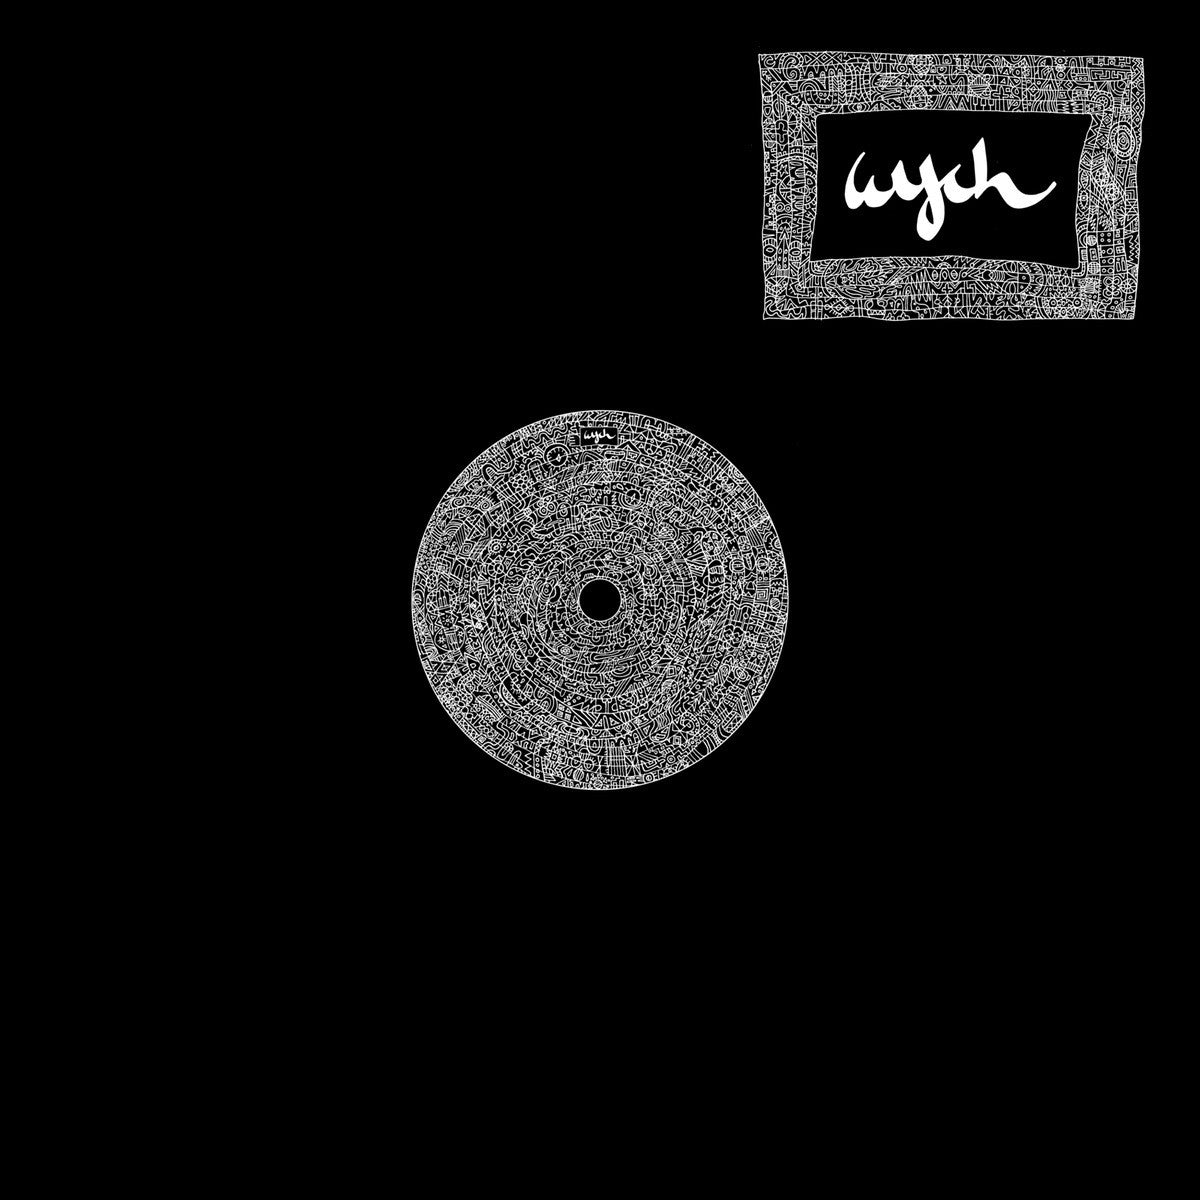 K-Lone & Ill Chill - Rare Jewels EP , Vinyl - Wych, Unearthed Sounds